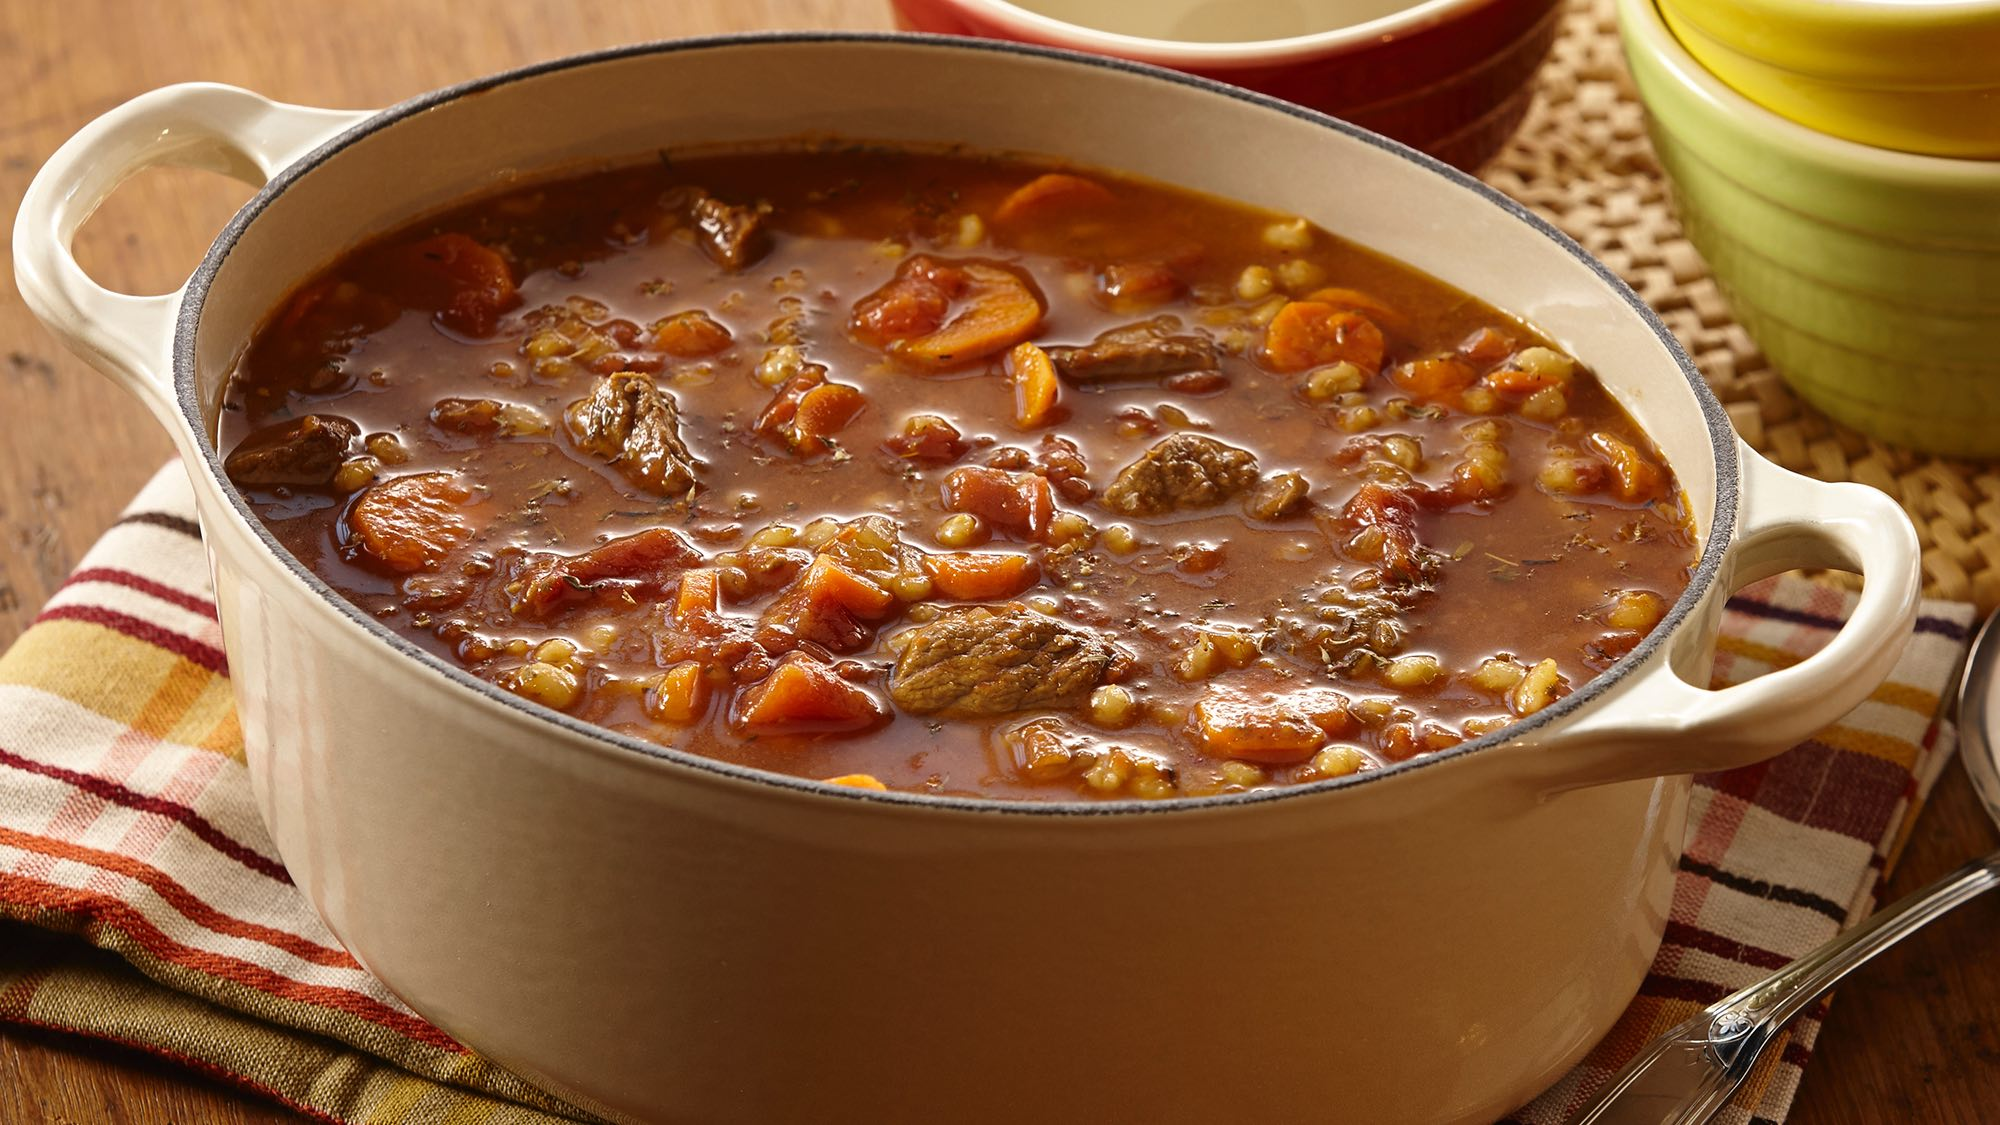 McCormick Slow Cookers Beef Barley Soup